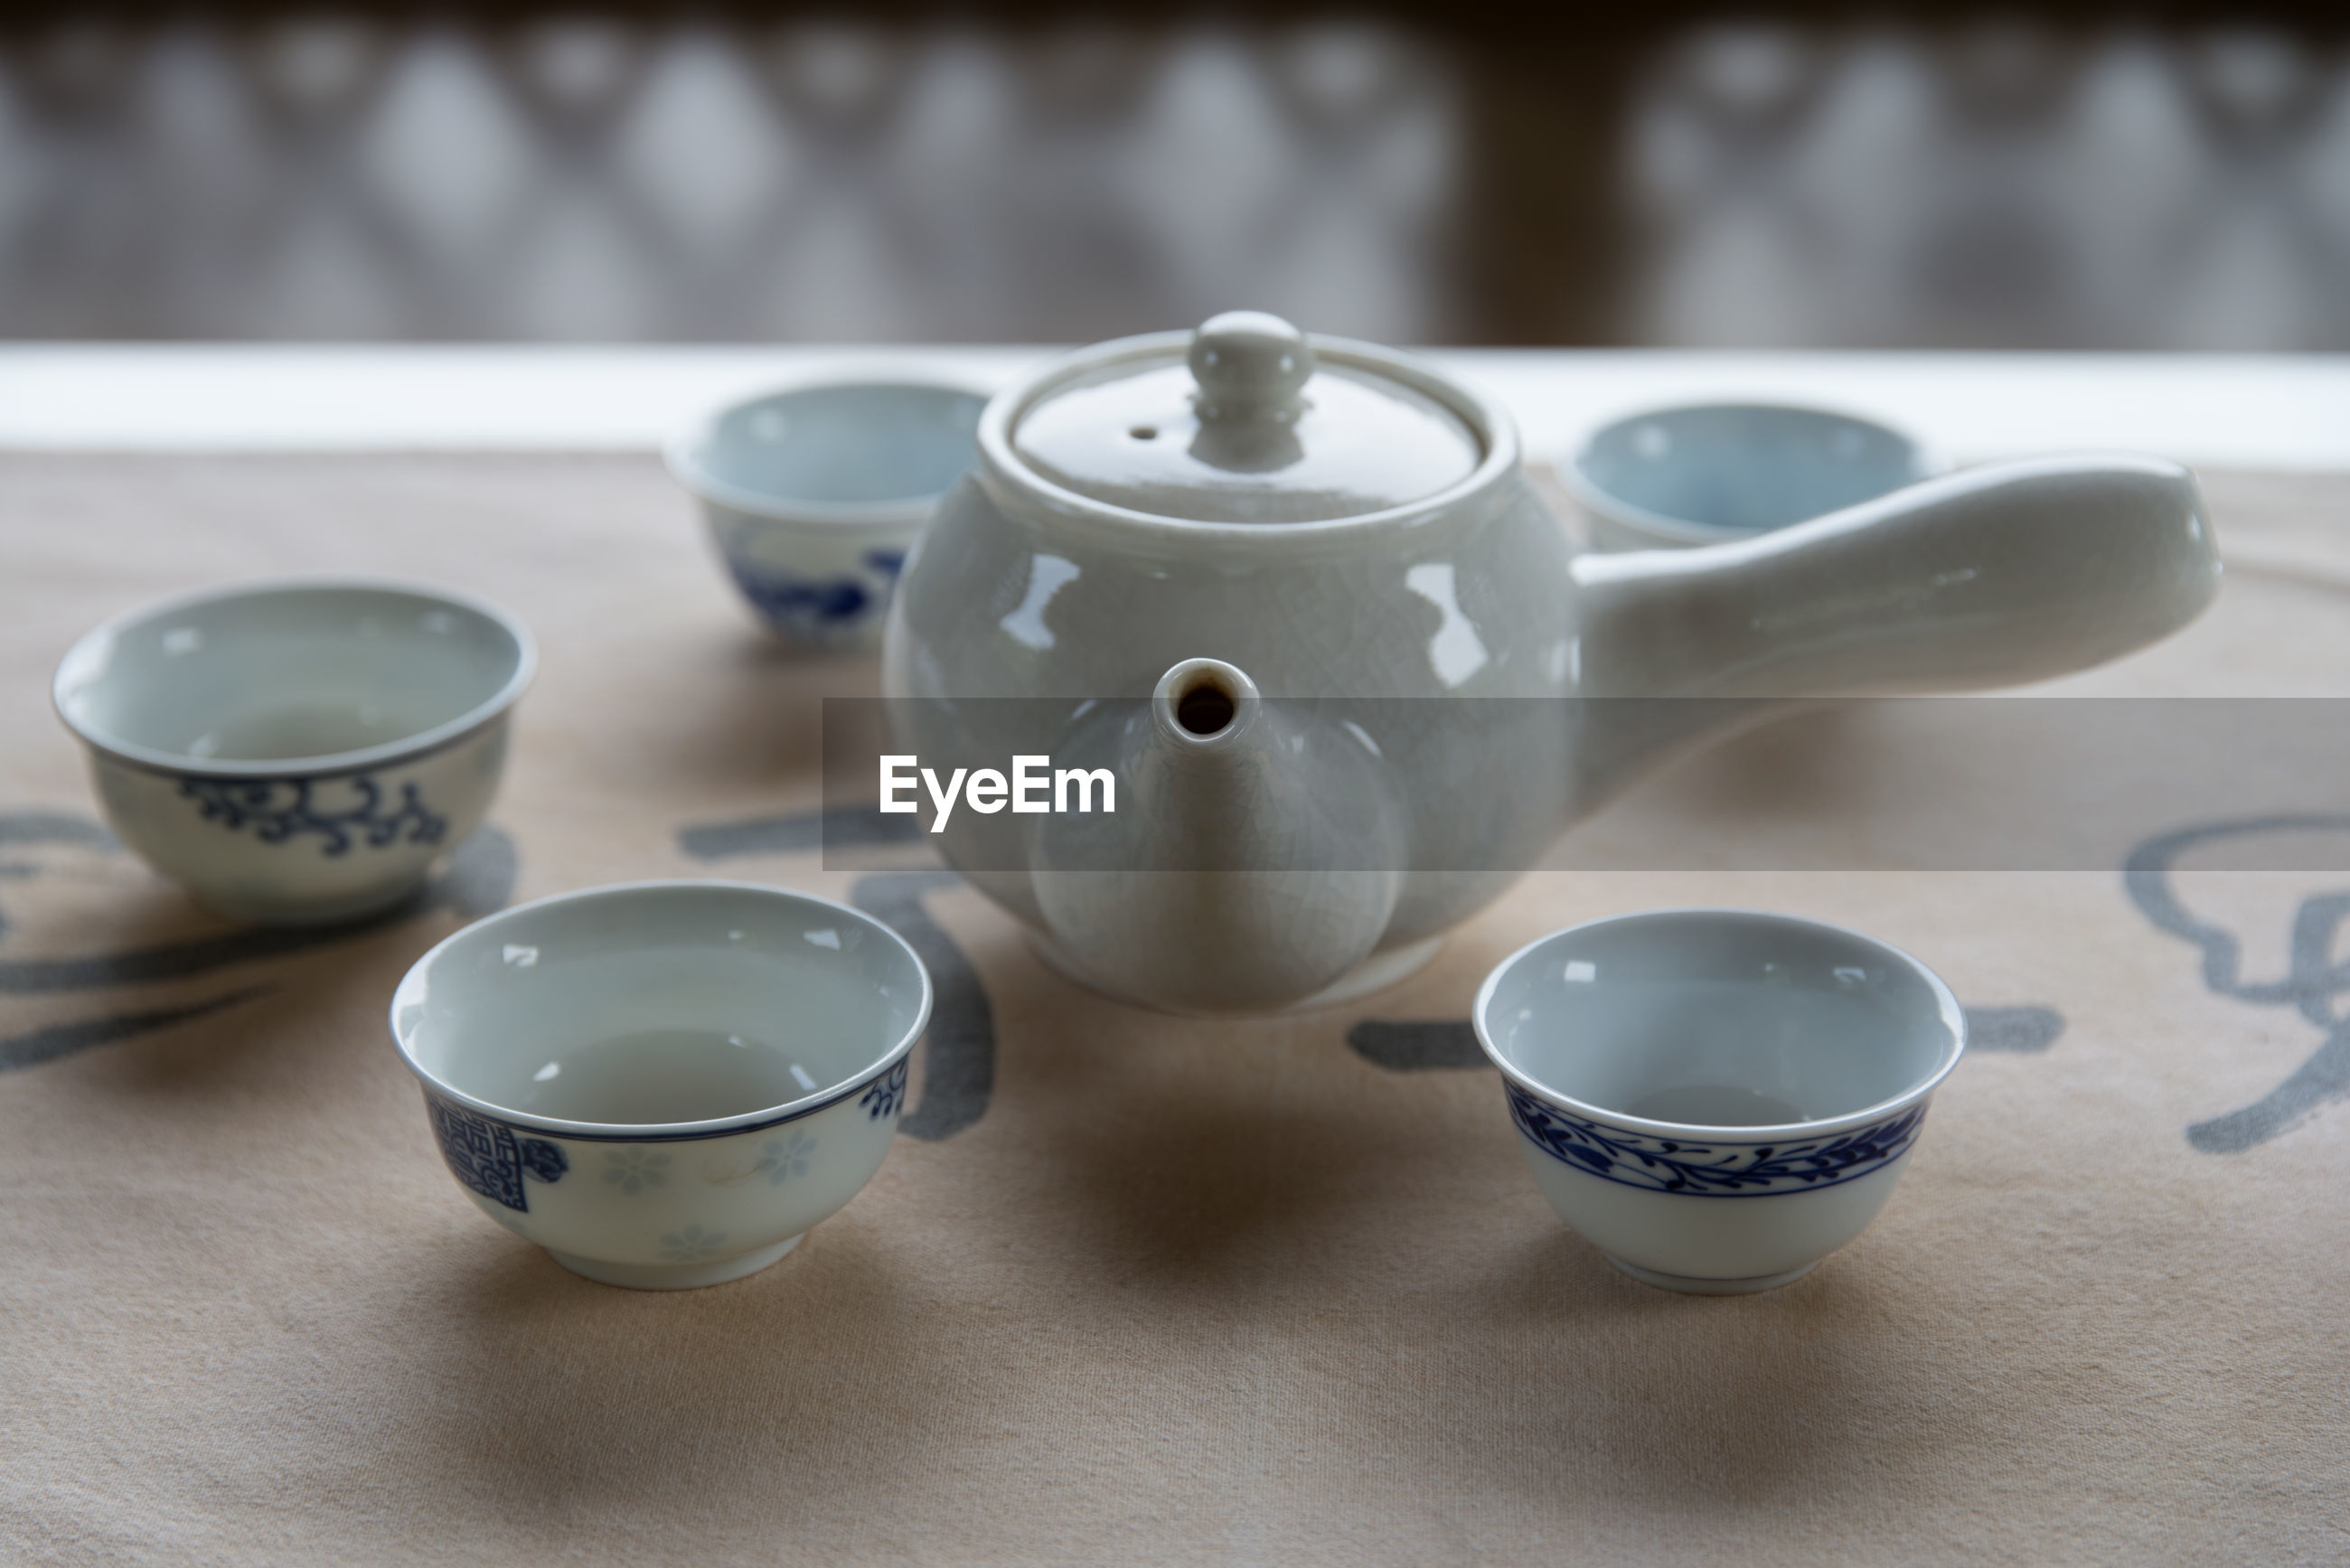 CLOSE-UP OF TEA IN CUP ON TABLE